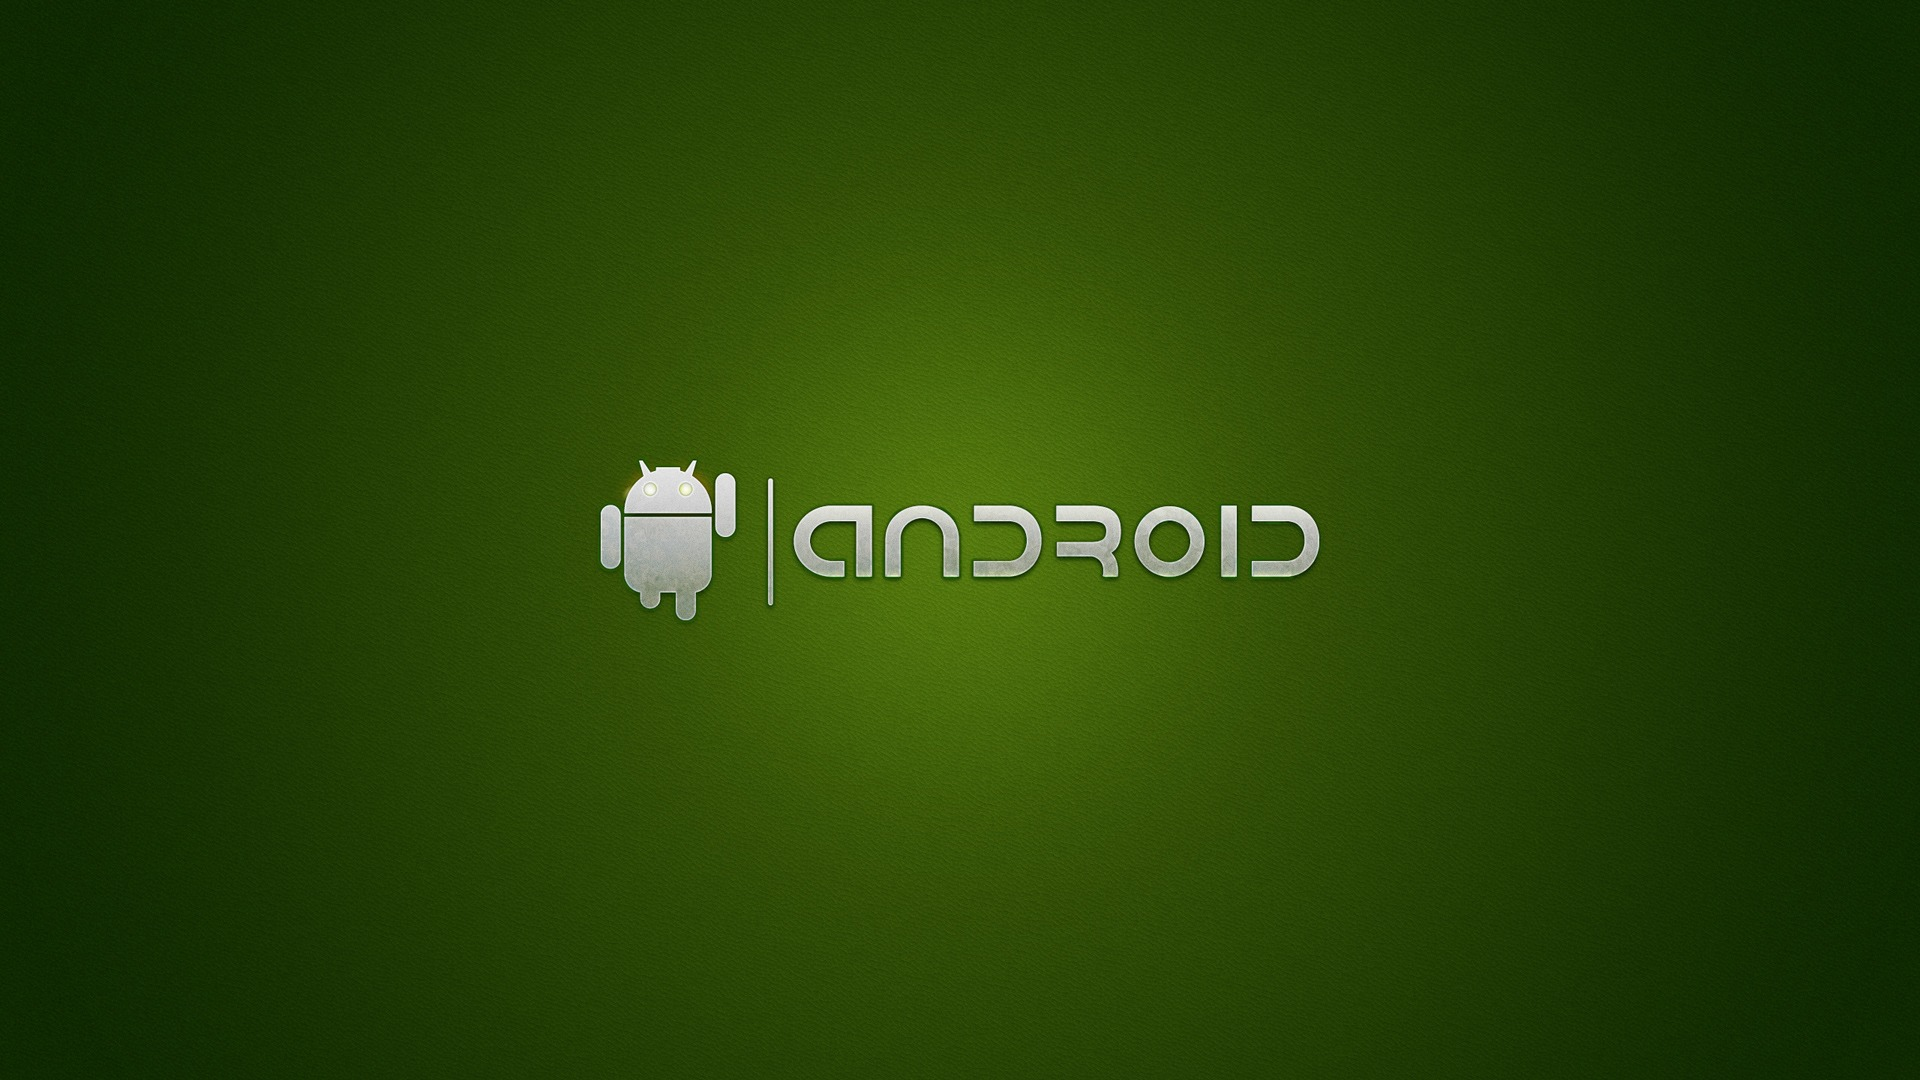 Download High Quality Android Wallpapers   Desktop Wallpapers Blogs 1920x1080